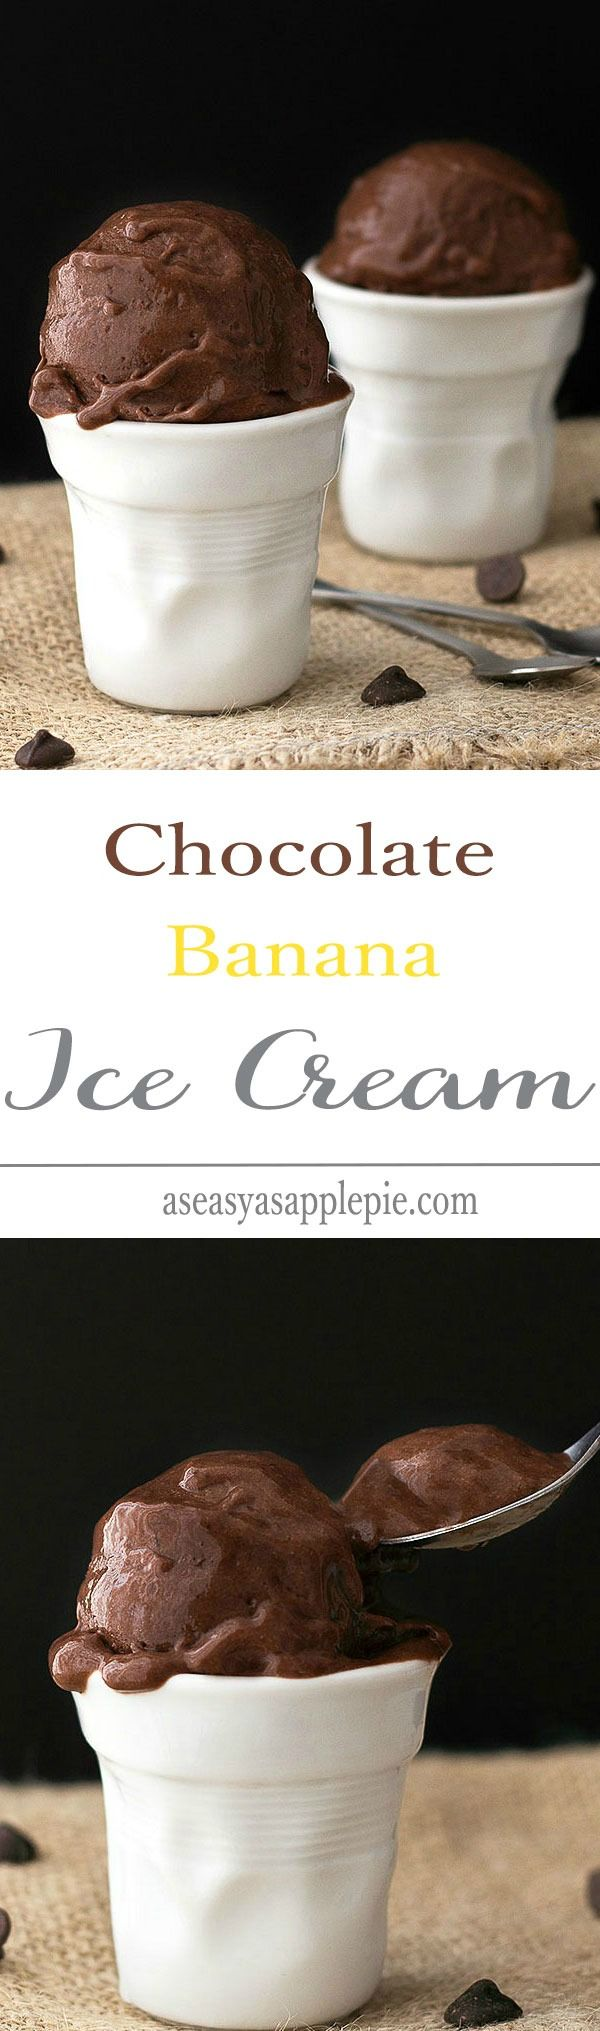 YASSSS!!! Chocolate Banana Ice Cream - just two ingredients and a blender needed to make this healthy, creamy treat. No cream, no milk, no refined sugar! A vegan, vegetarian and paleo soft serve dessert!